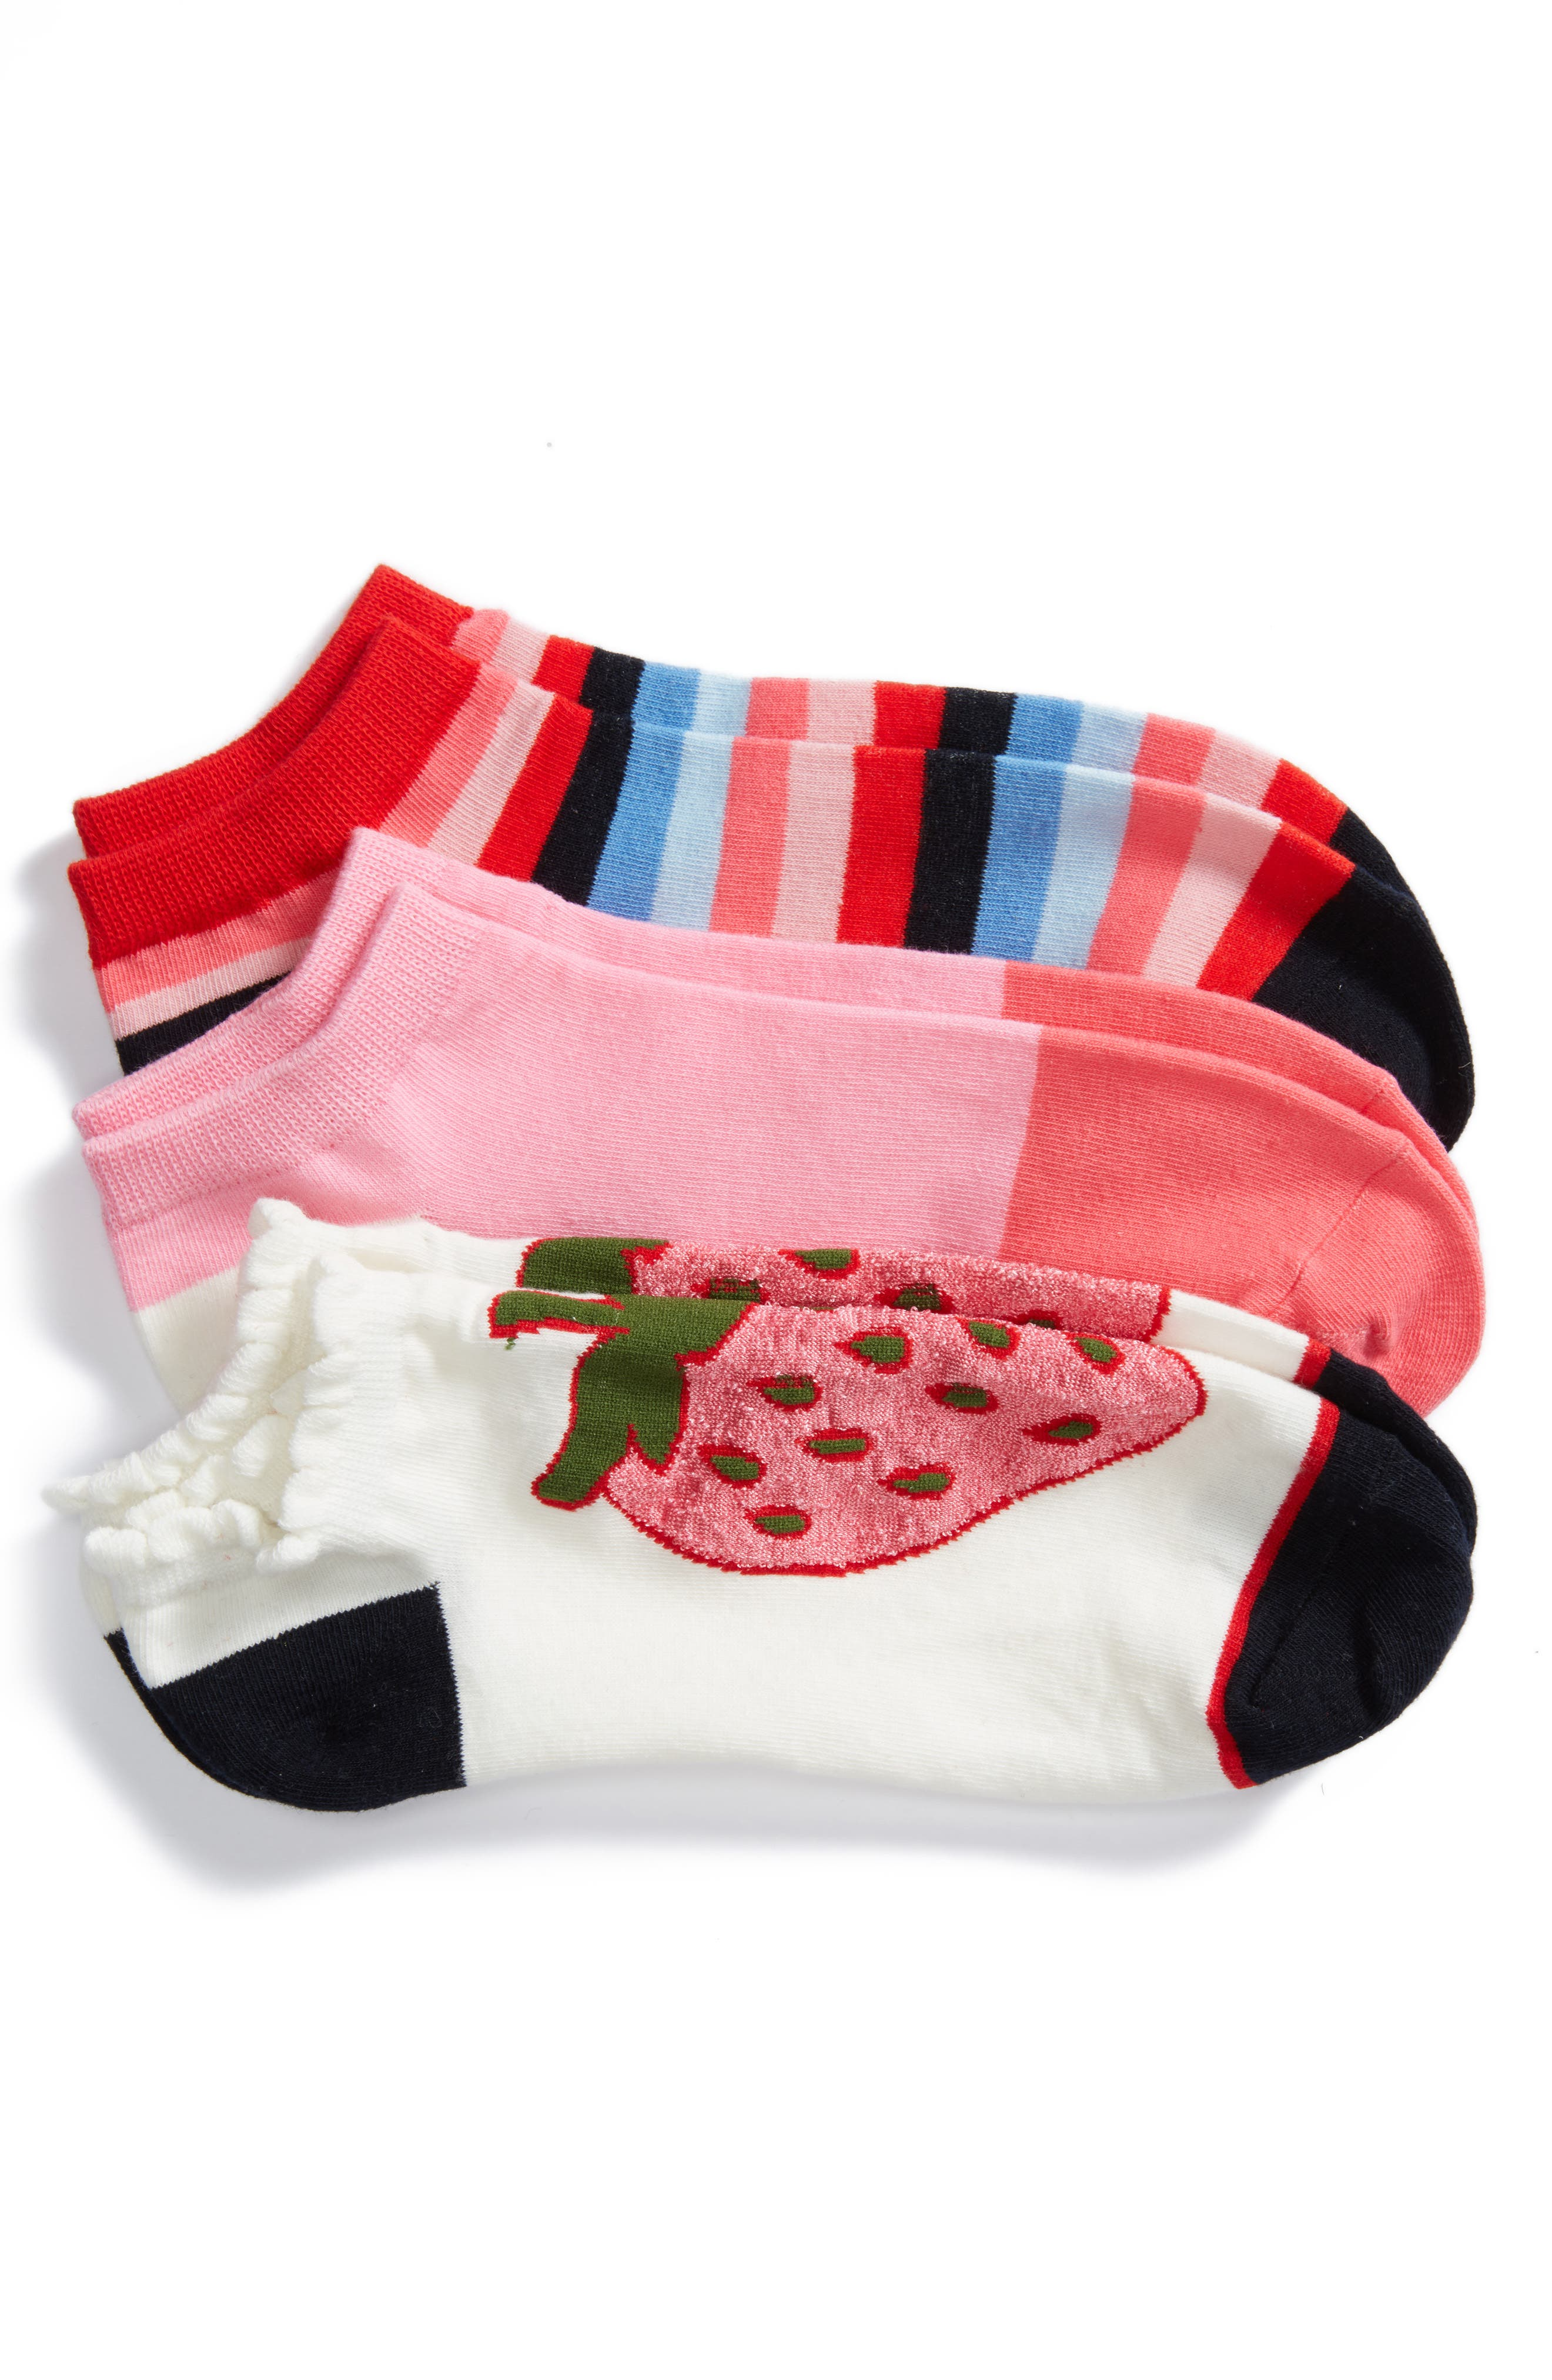 strawberry 3-pack no-show socks,                             Alternate thumbnail 2, color,                             White